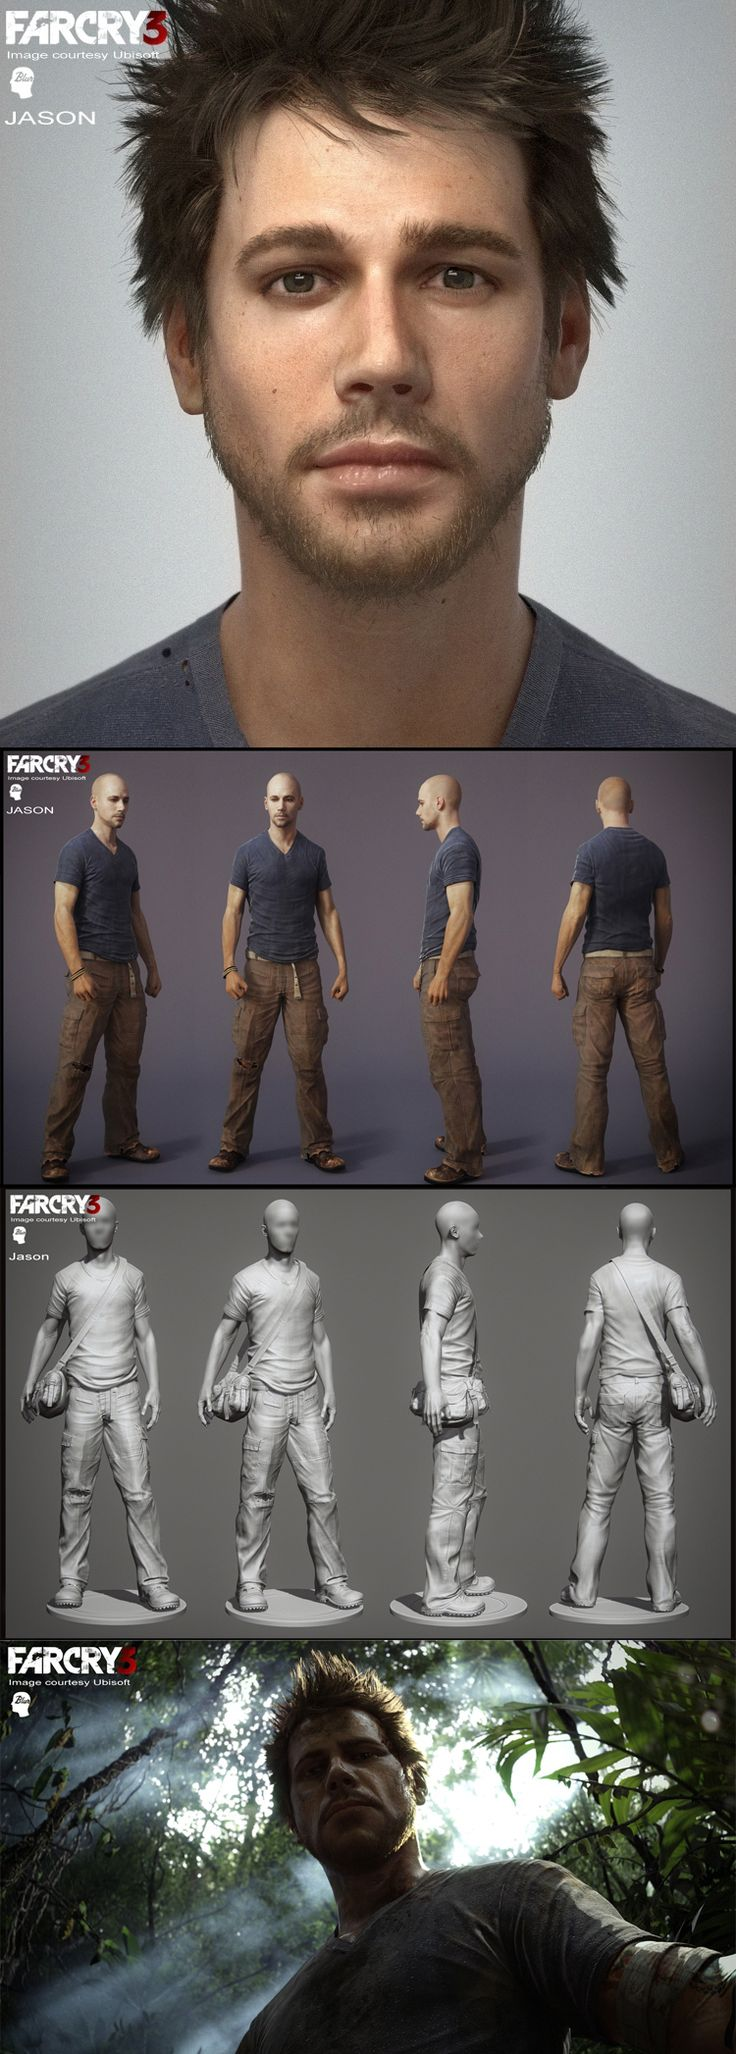 Far Cry 3 Character Modelling using ZBrush.